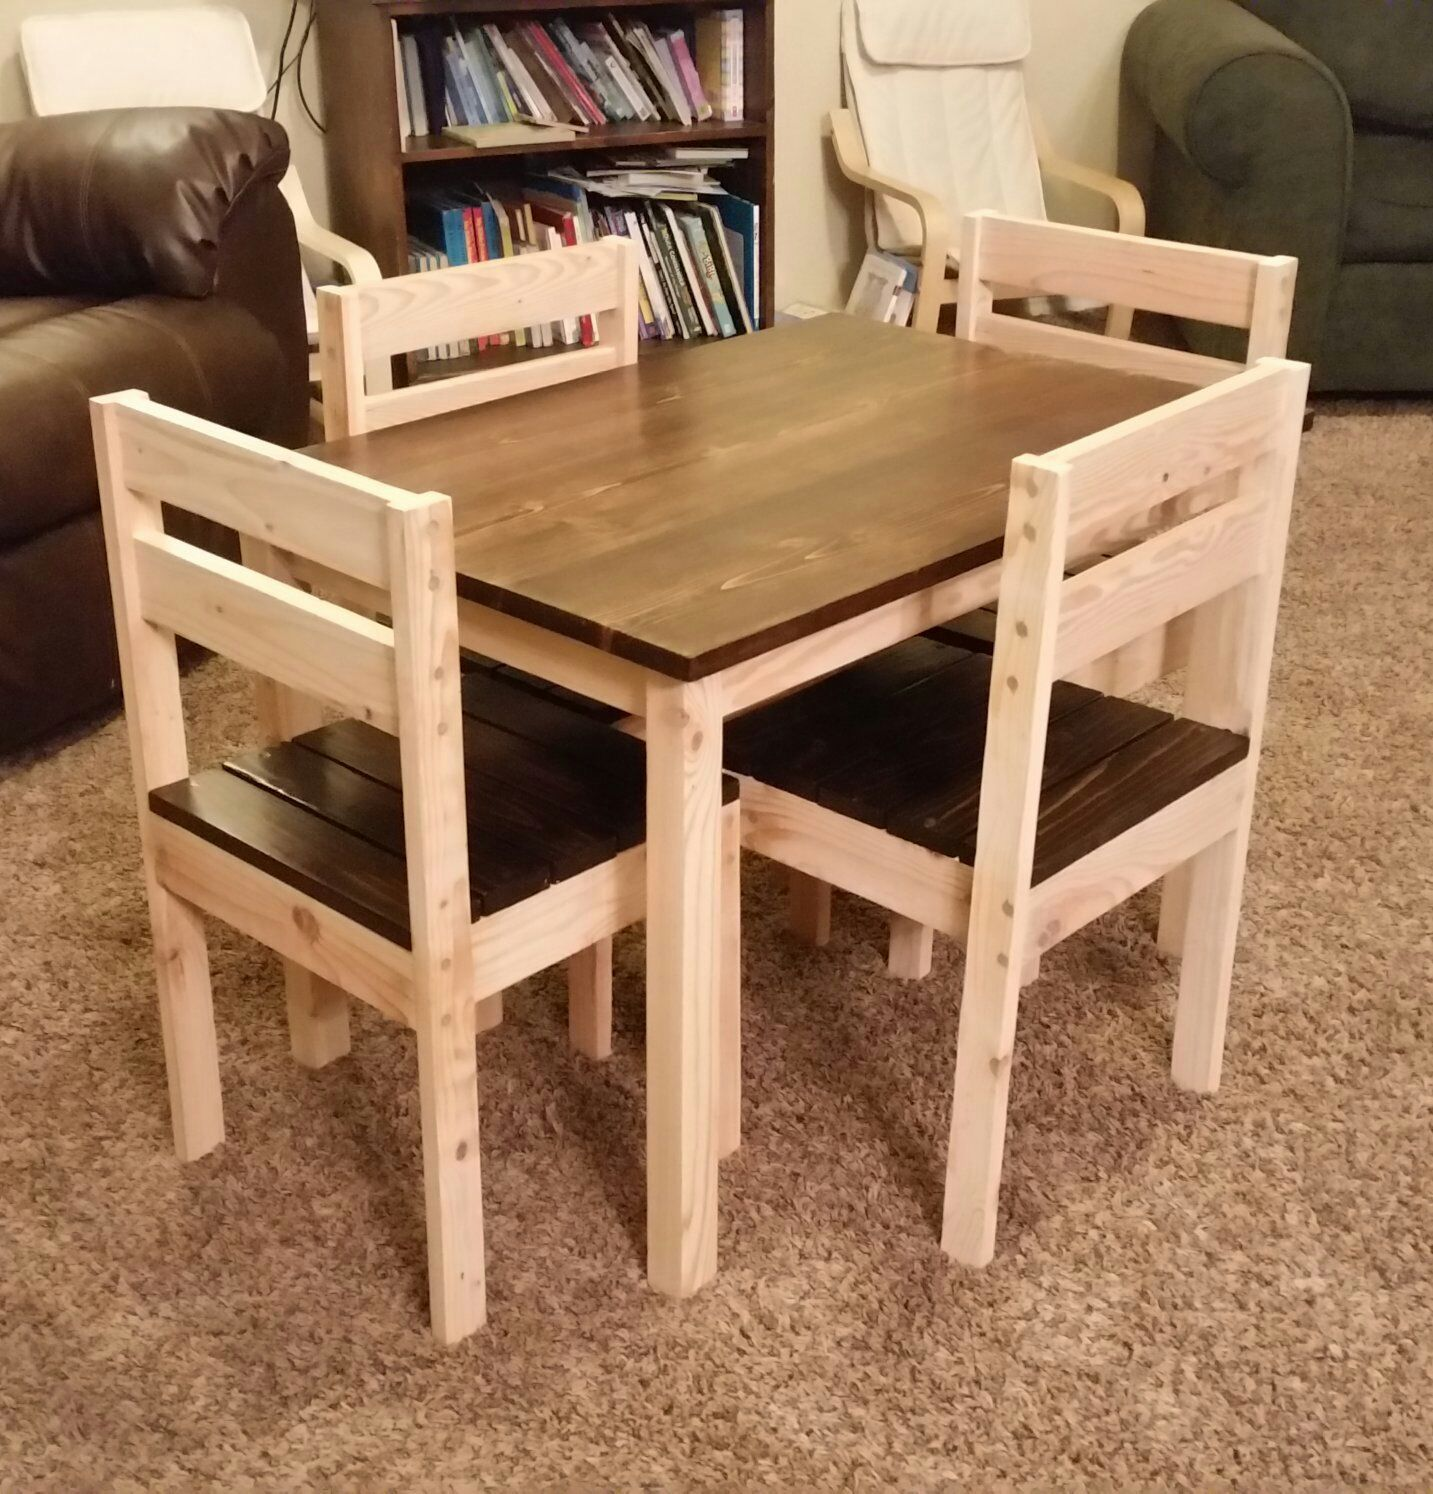 Kids Wooden Chair Kids Table And Chairs Do It Yourself Home Projects From